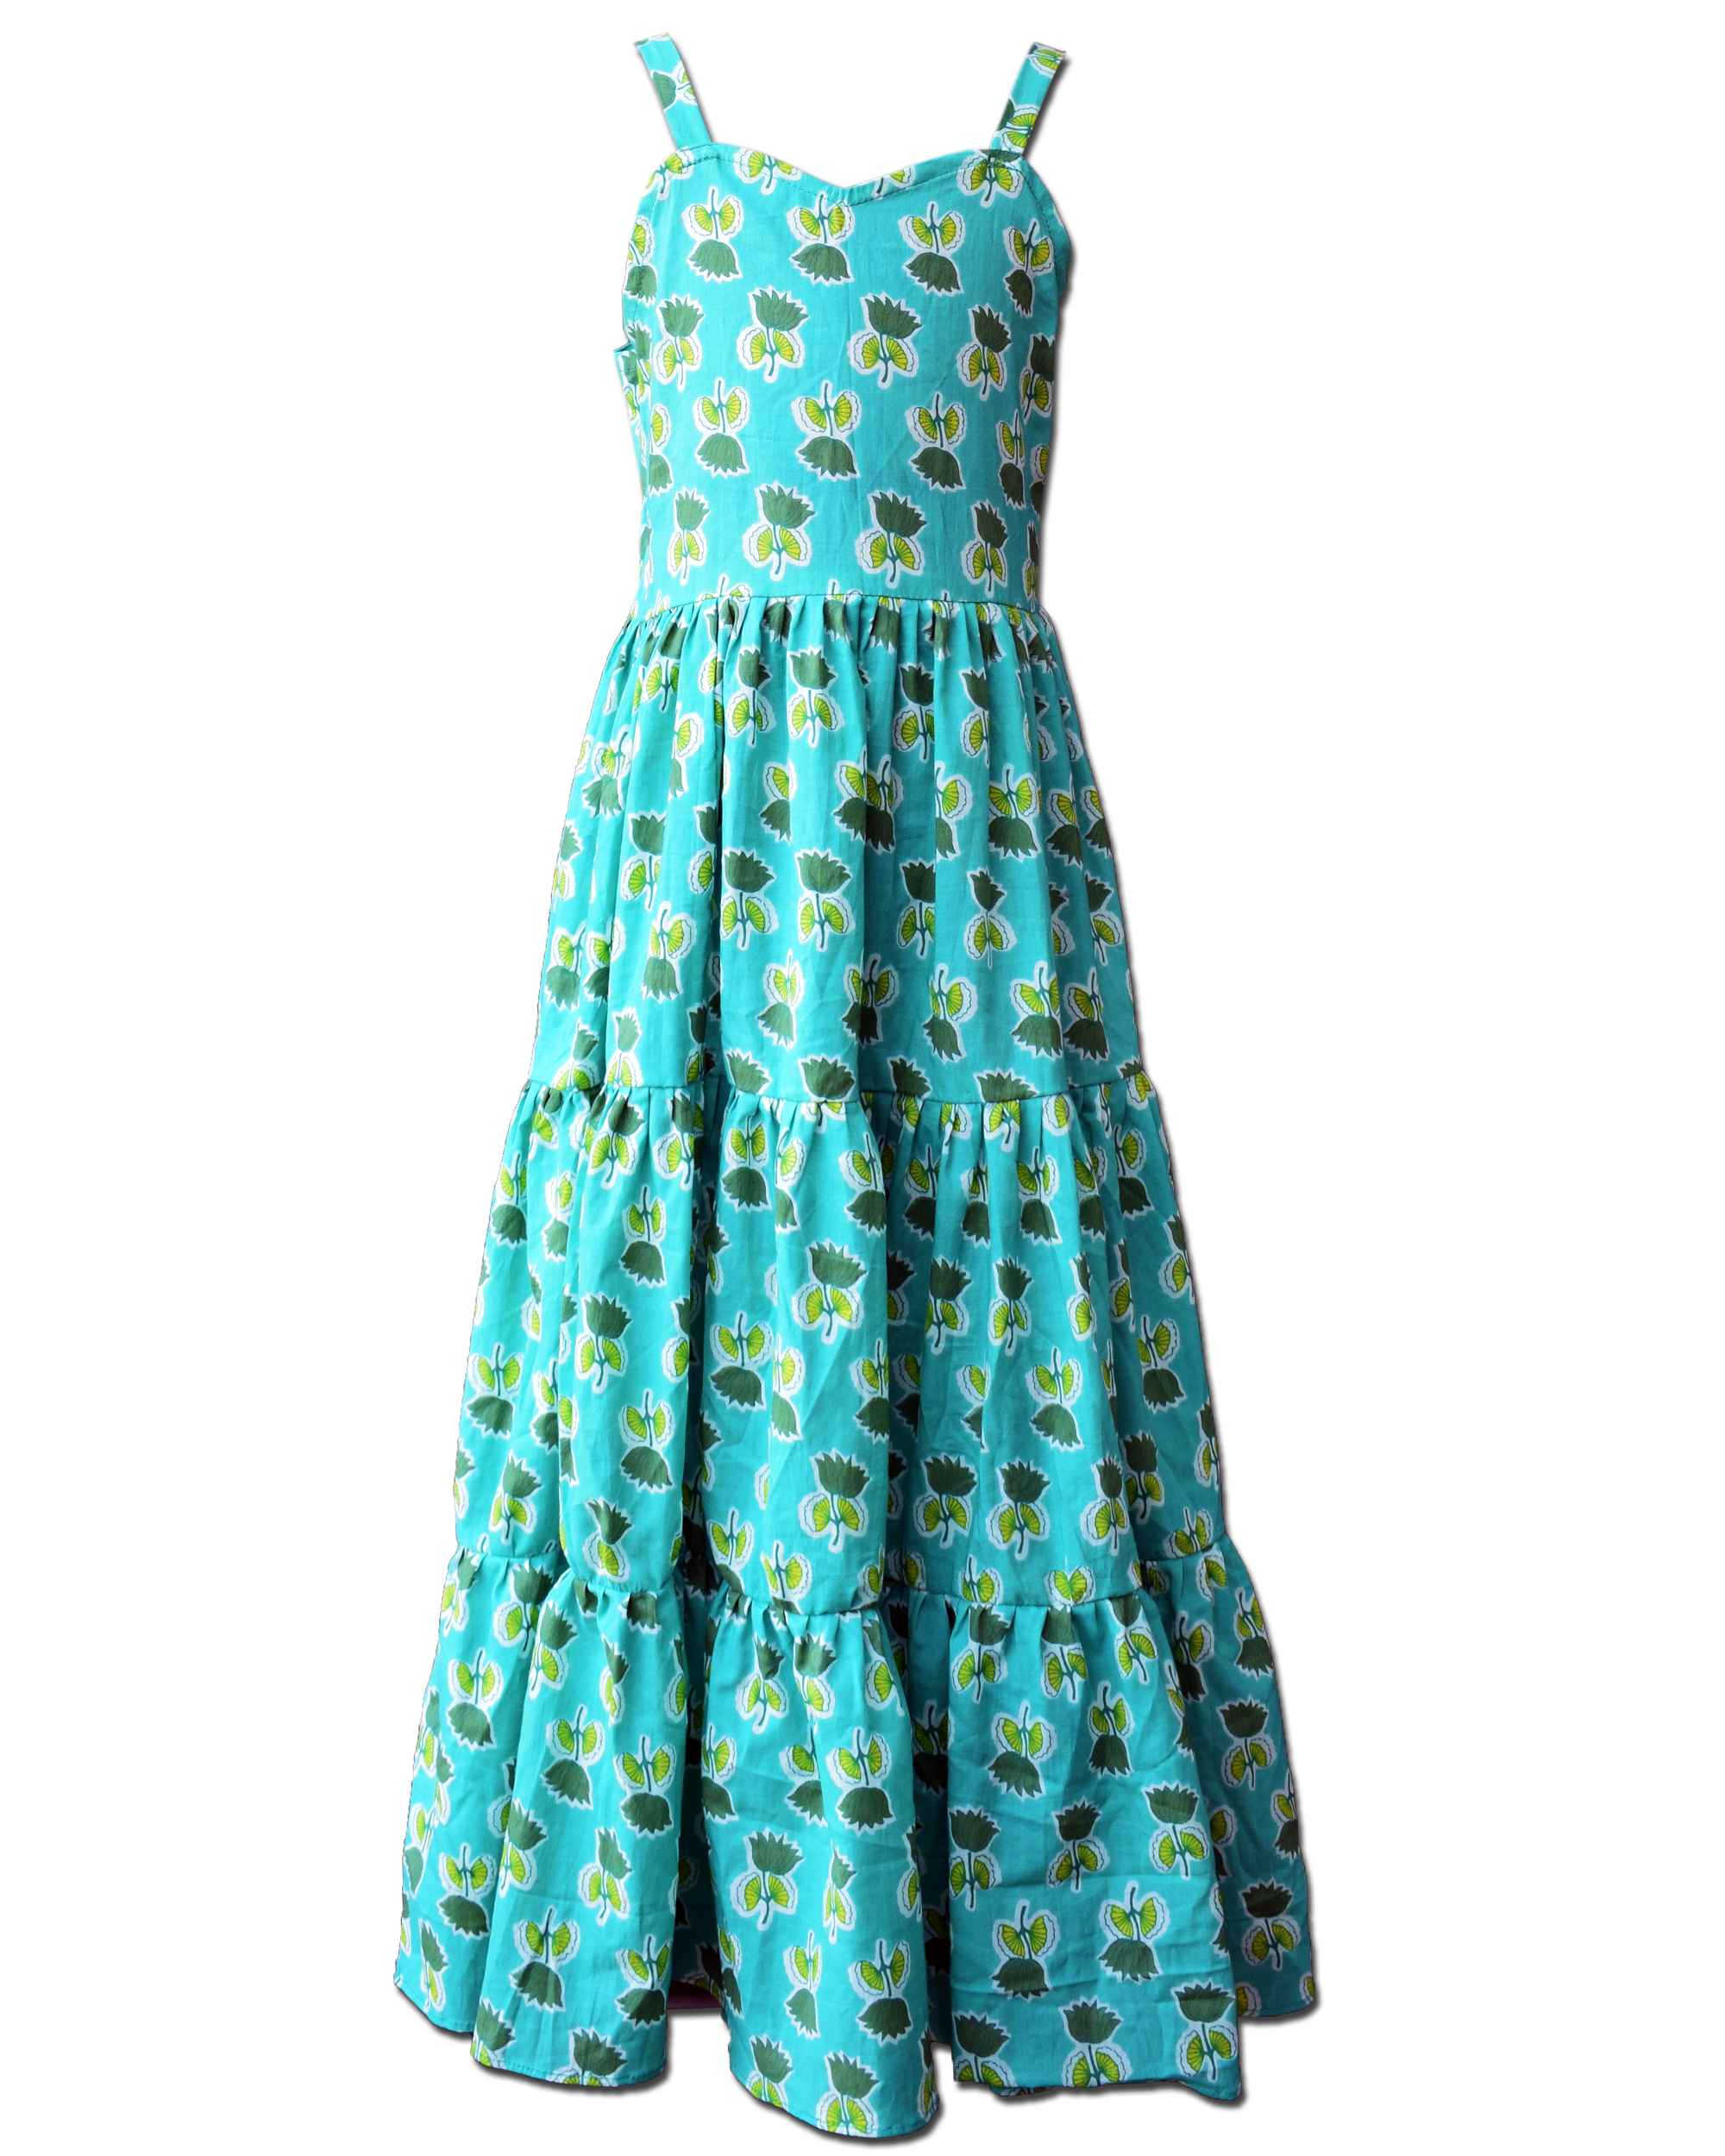 Sea green floral printed tiered dress